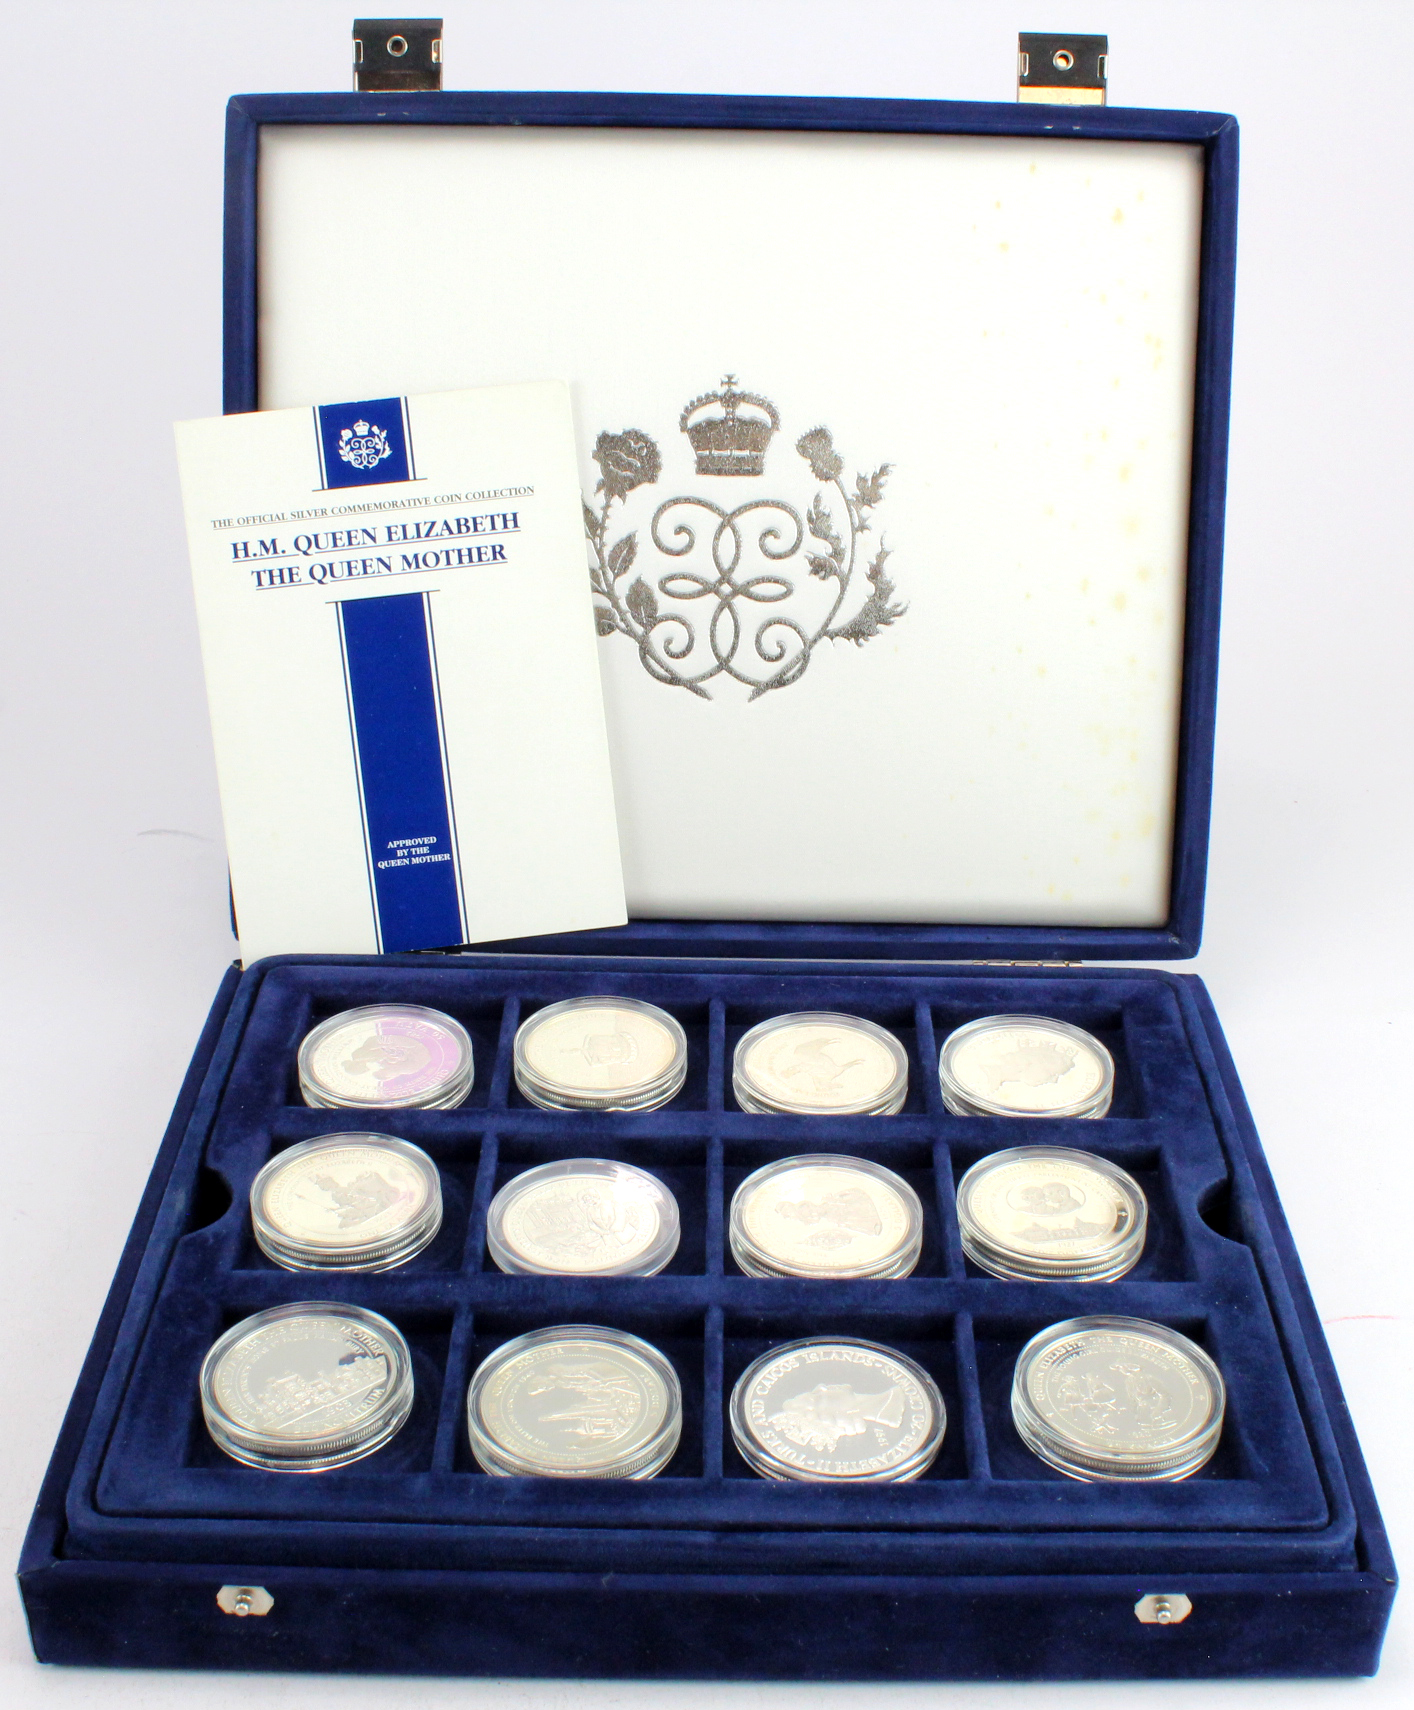 British Commonwealth Silver Proofs (36): H.M. Queen Elizabeth the Queen Mother, The Official